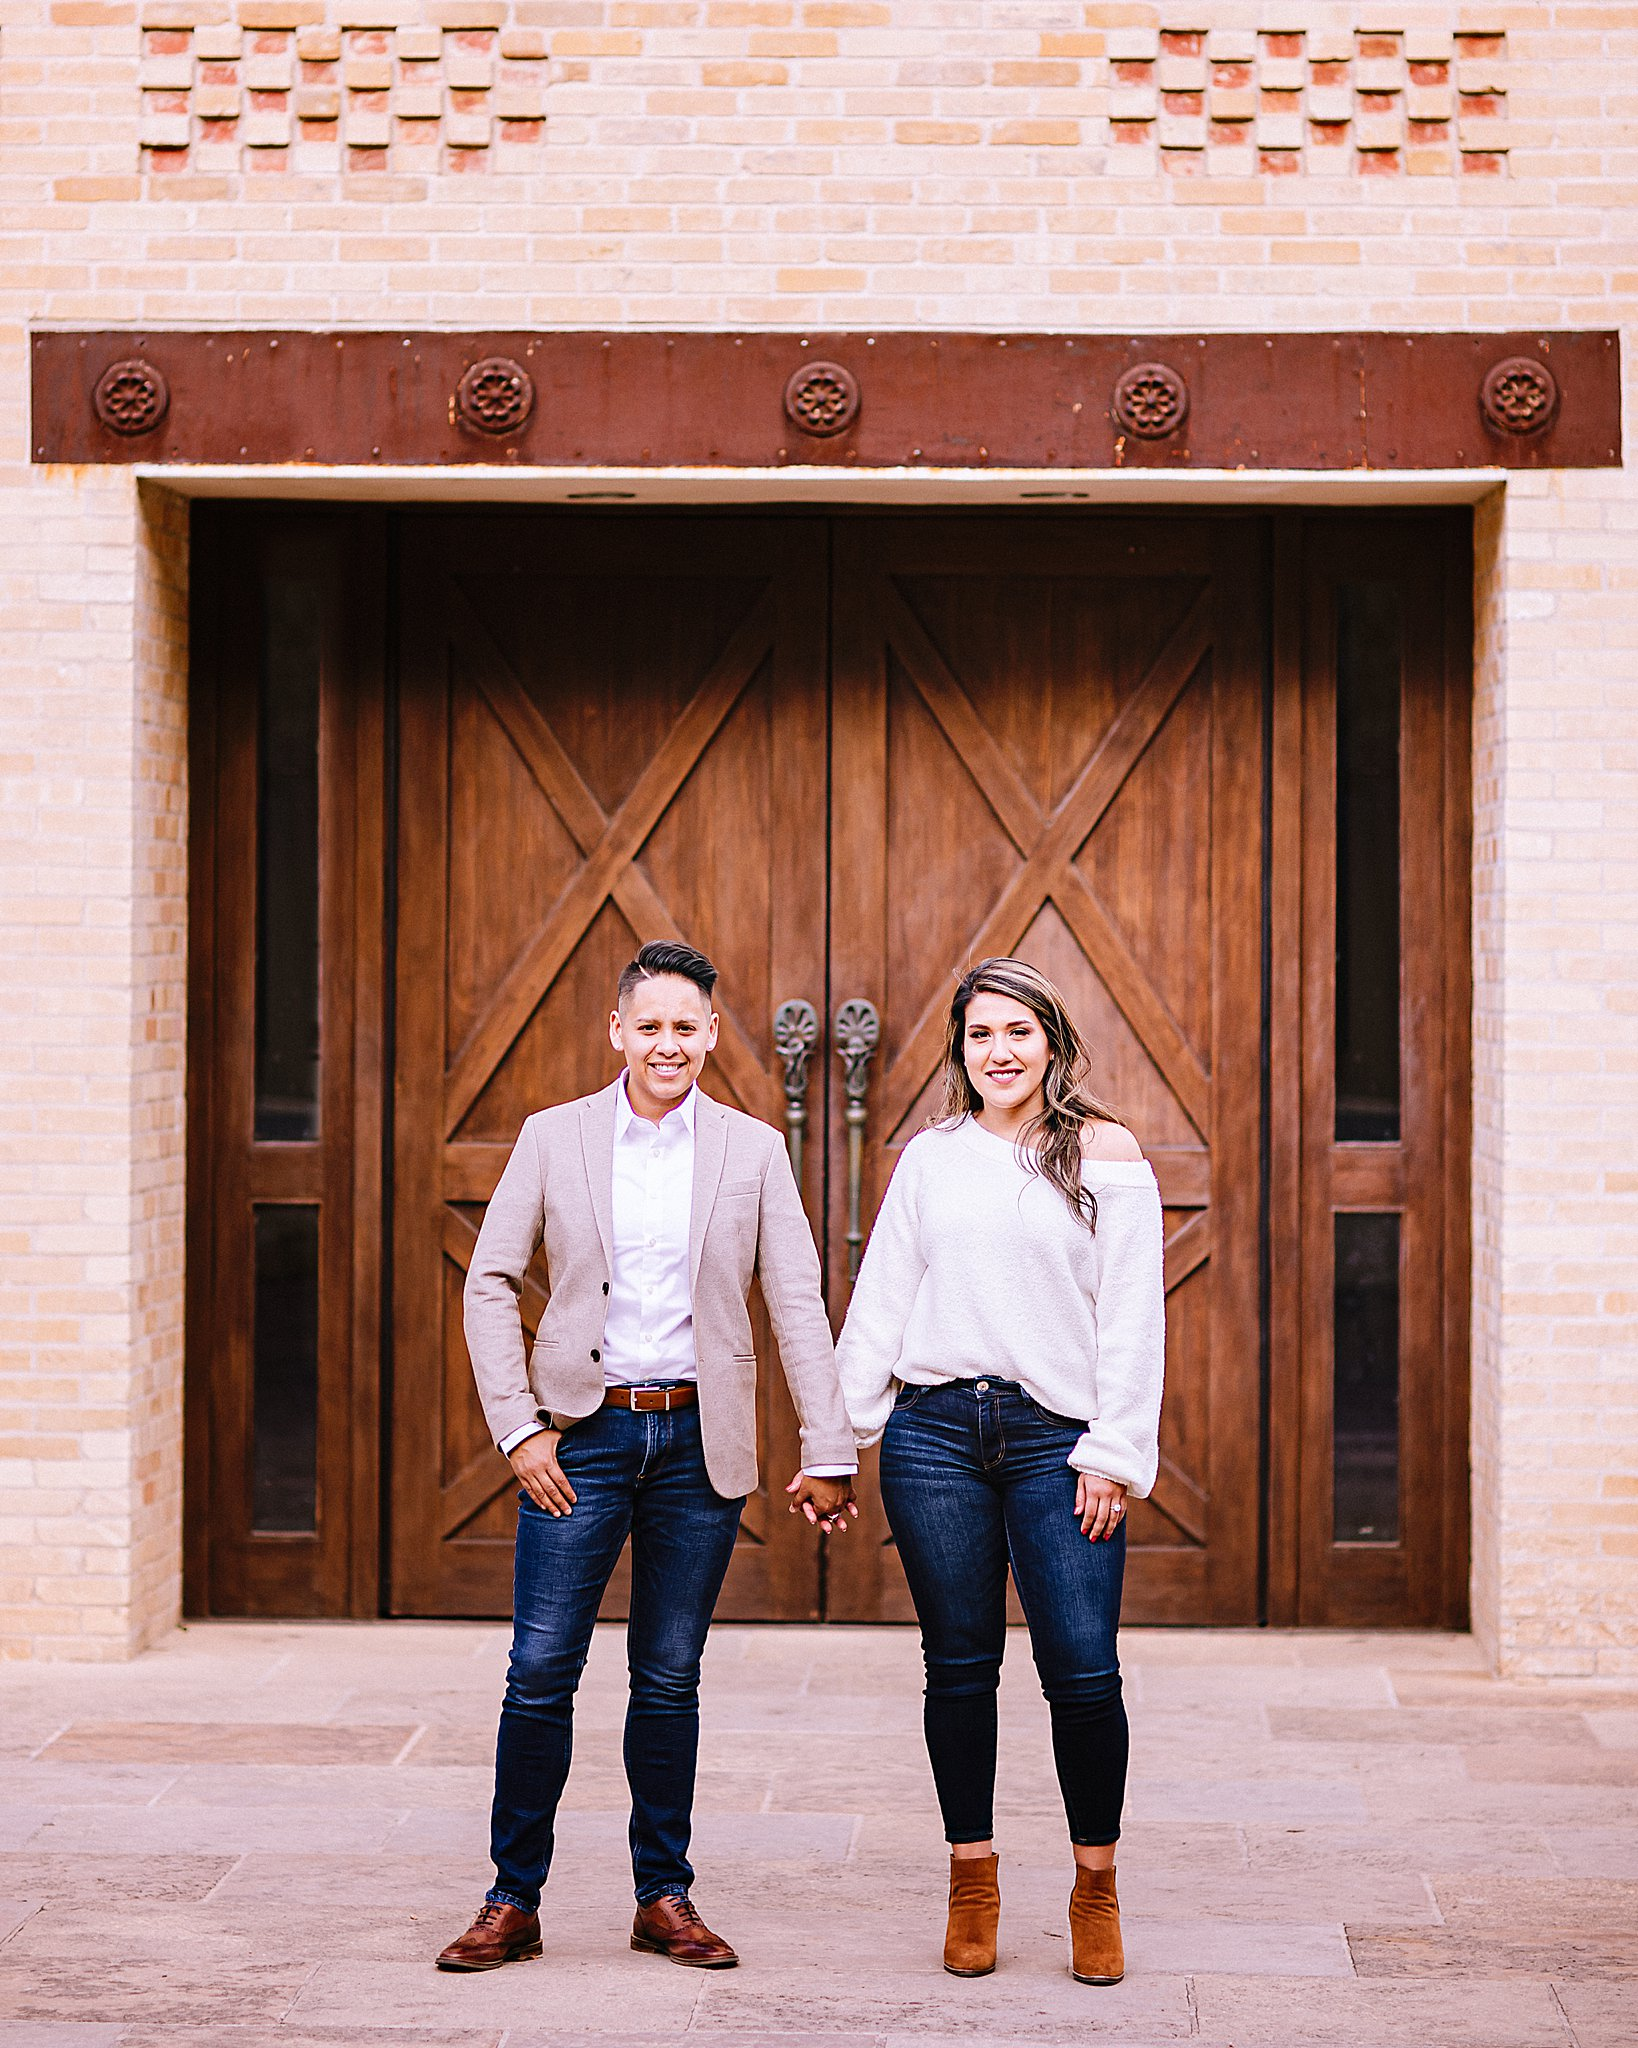 Carly-Barton-Photography-Texas-Engagement-Photographer-The-Historic-Pearl-San-Antonio_0013.jpg